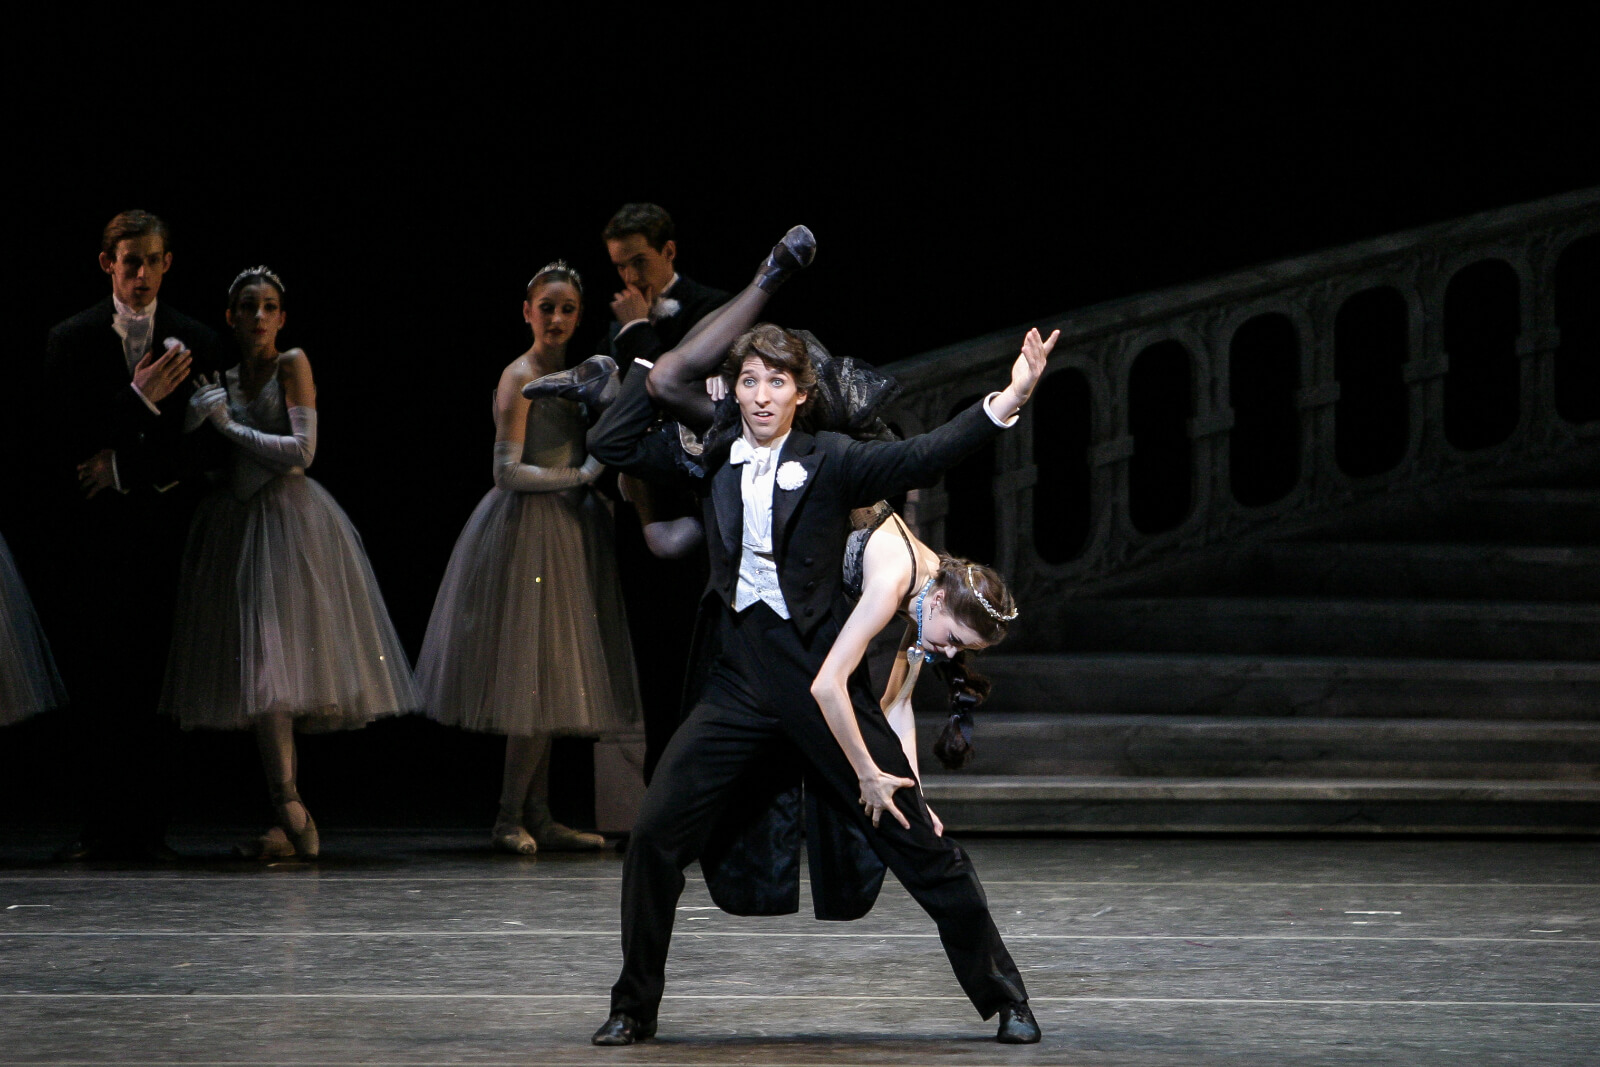 Damian Woetzel and Megan Fairchild in a comedic pas de deux: Megan is held by one leg on his back, while grabbing his leg.